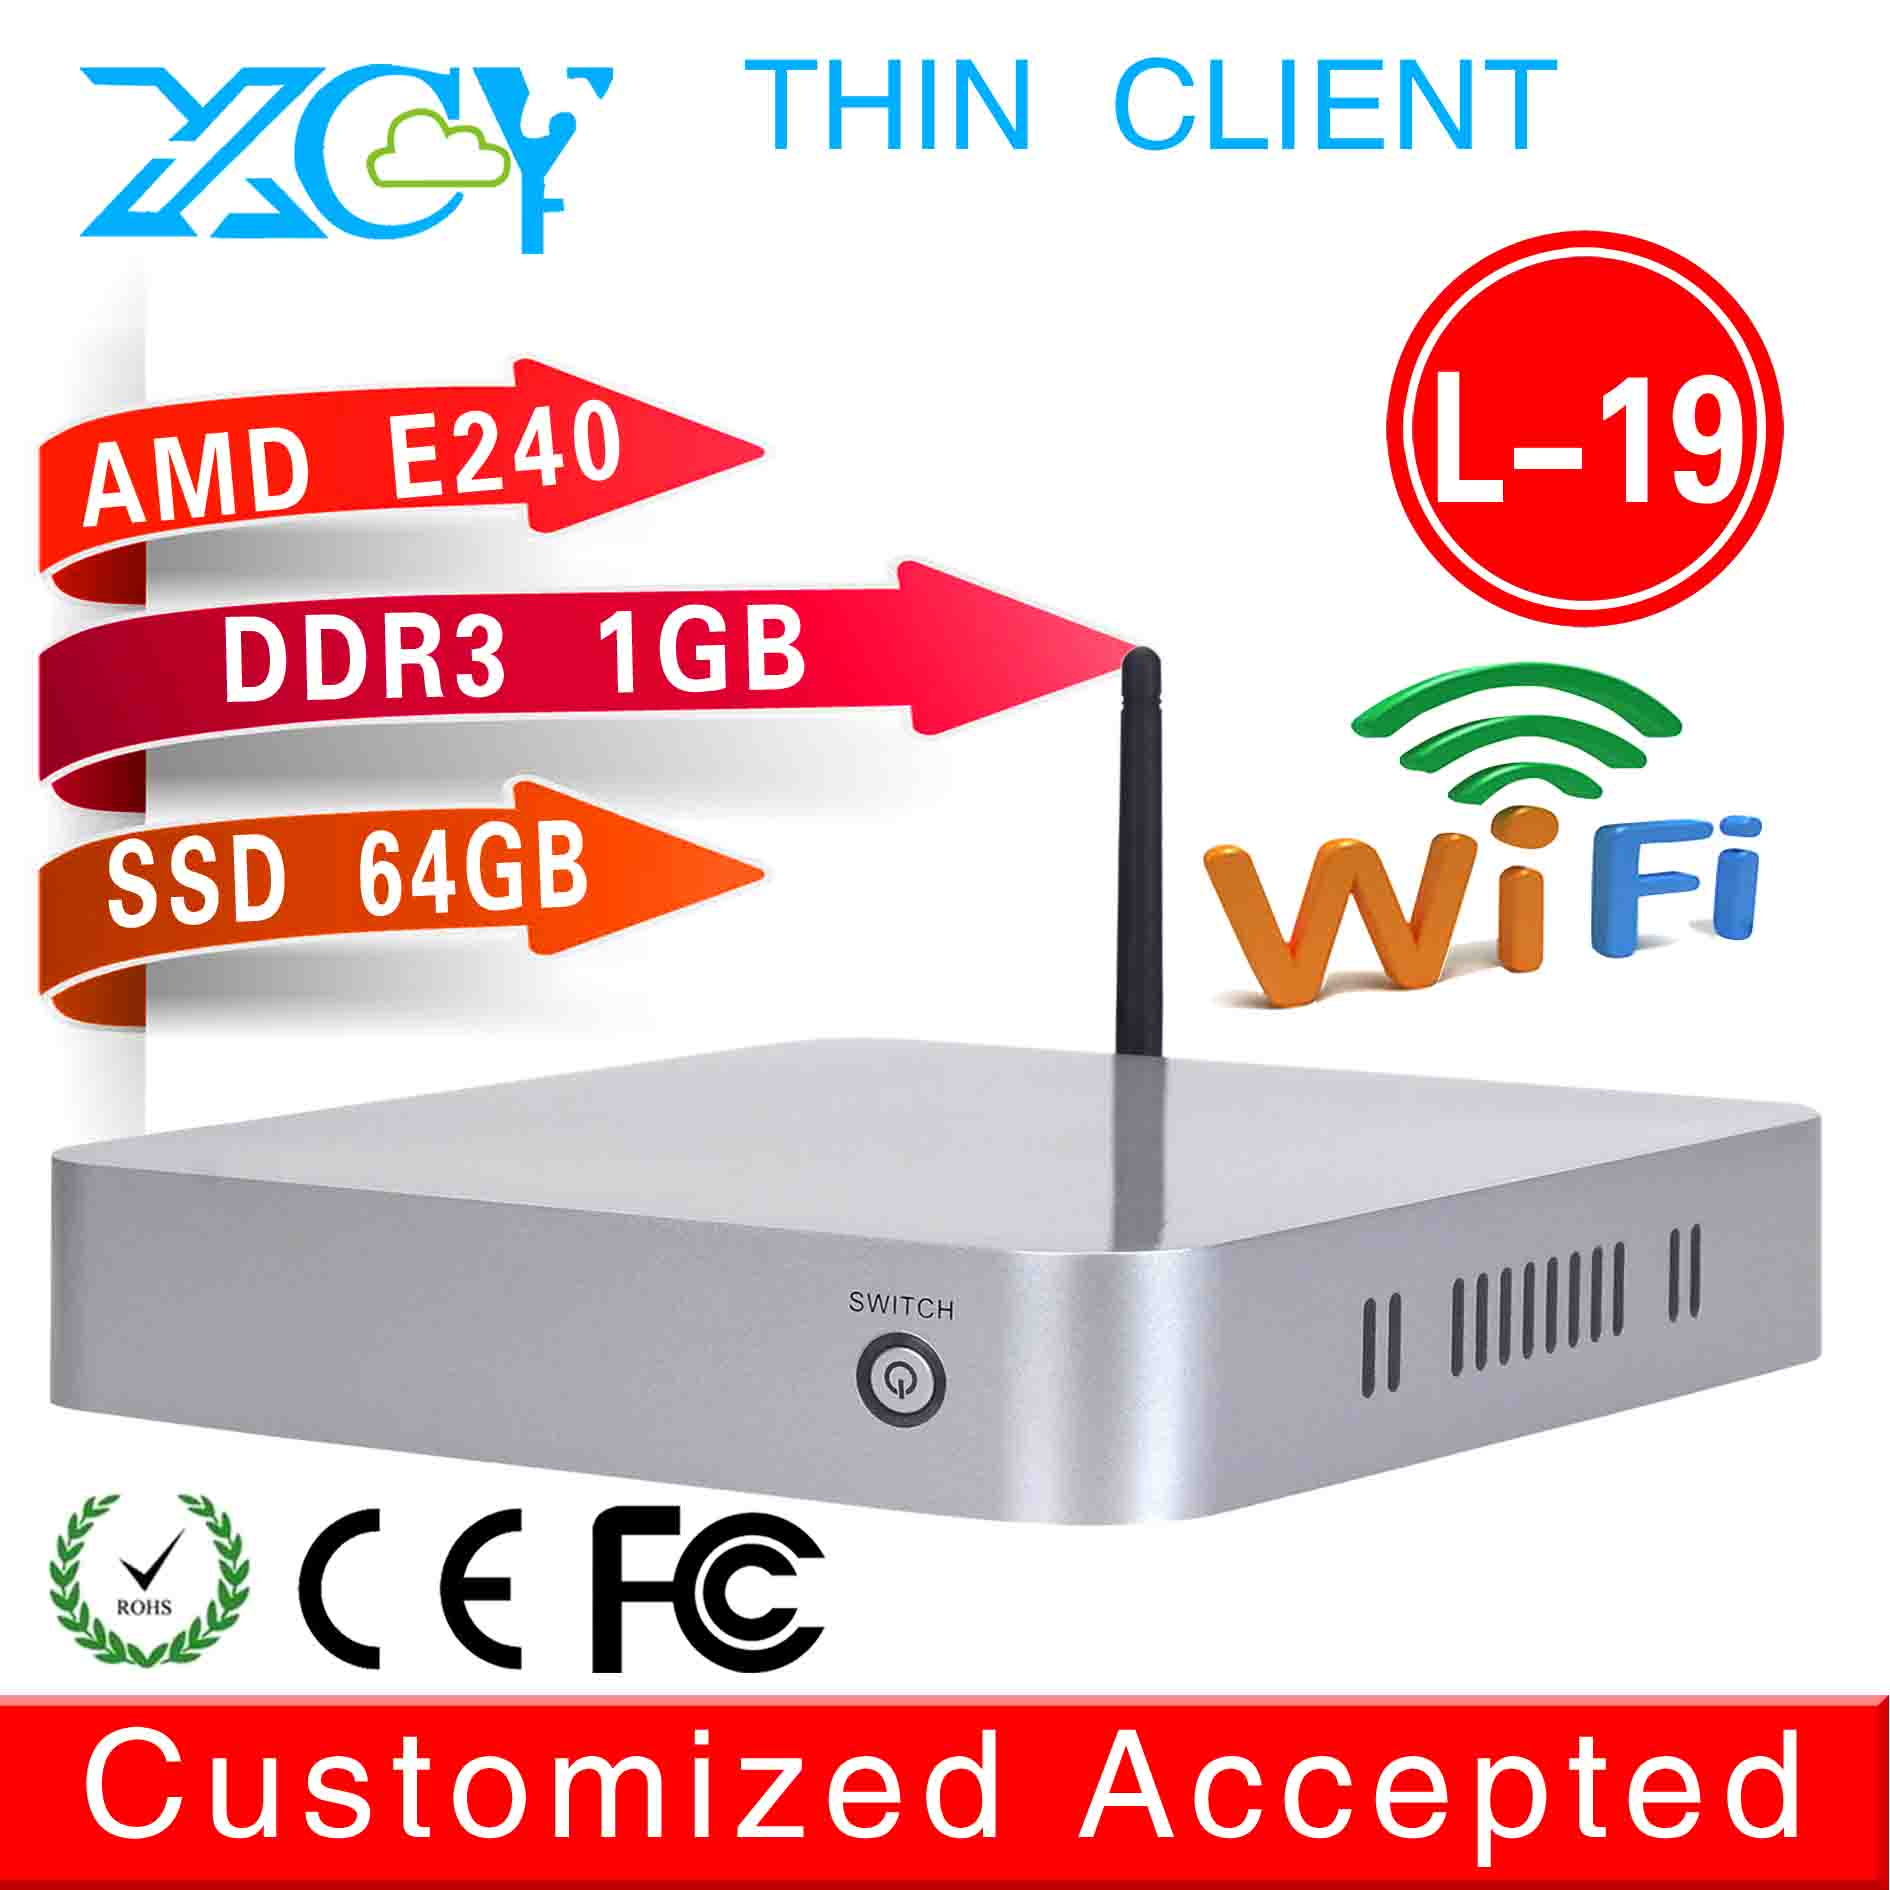 XCY Linux Micro PC Linux Mini Server Mini media player L-19 E240 1G RAM 64G SSD Support Linux OS Ubuntu with Good Performance(China (Mainland))